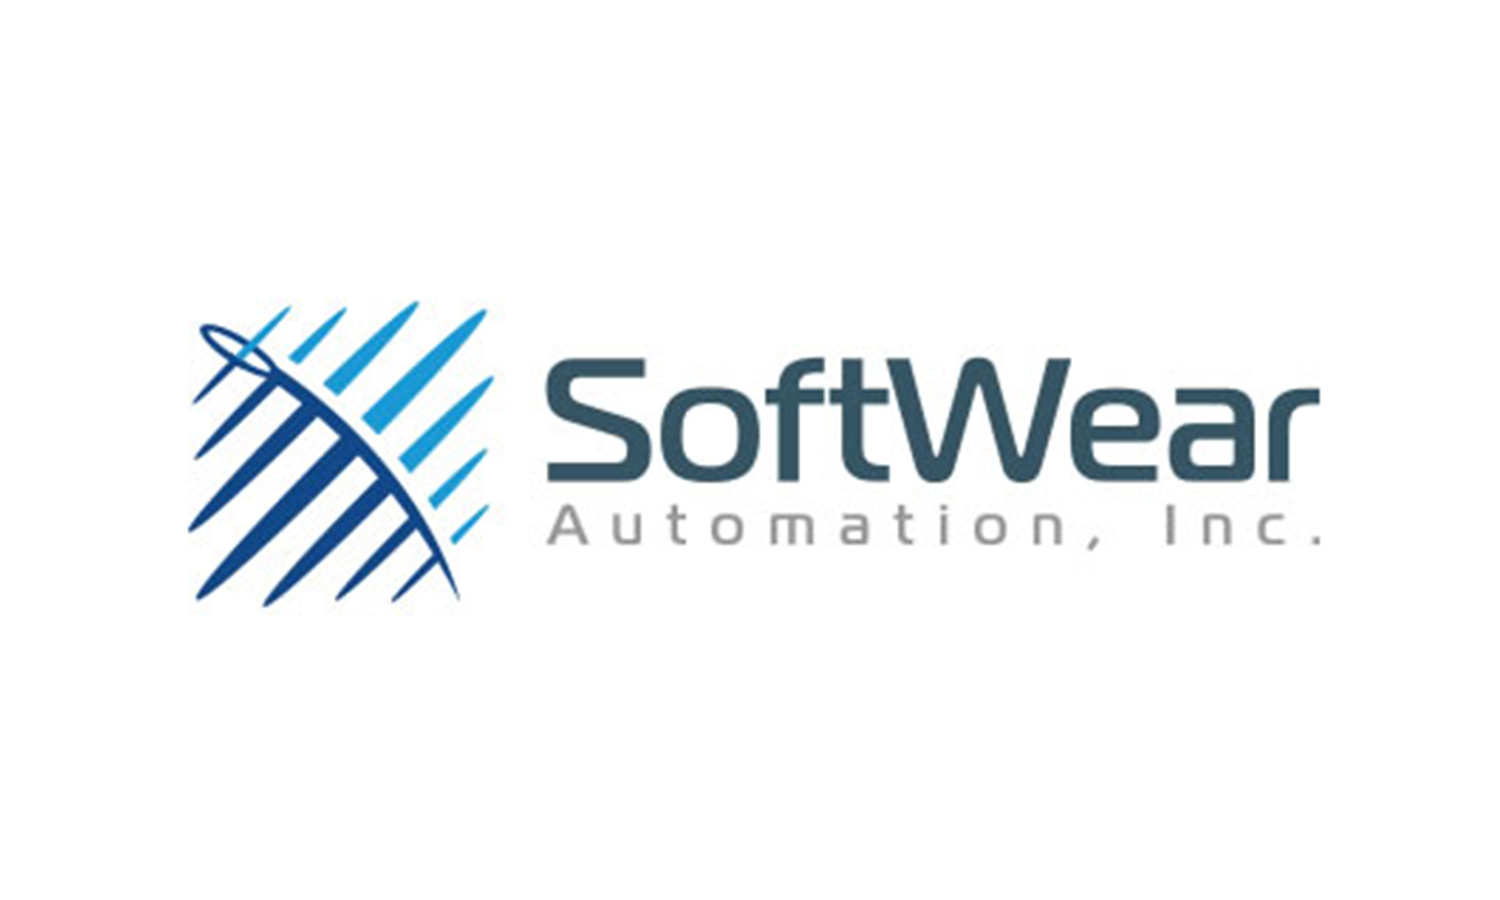 SoftWear Automation is disrupting the global sewn goods market through its use of patented machine-imaging technology that allows a wide range of sewing functions to be automated and performed by robots.    www.softwearautomation.com